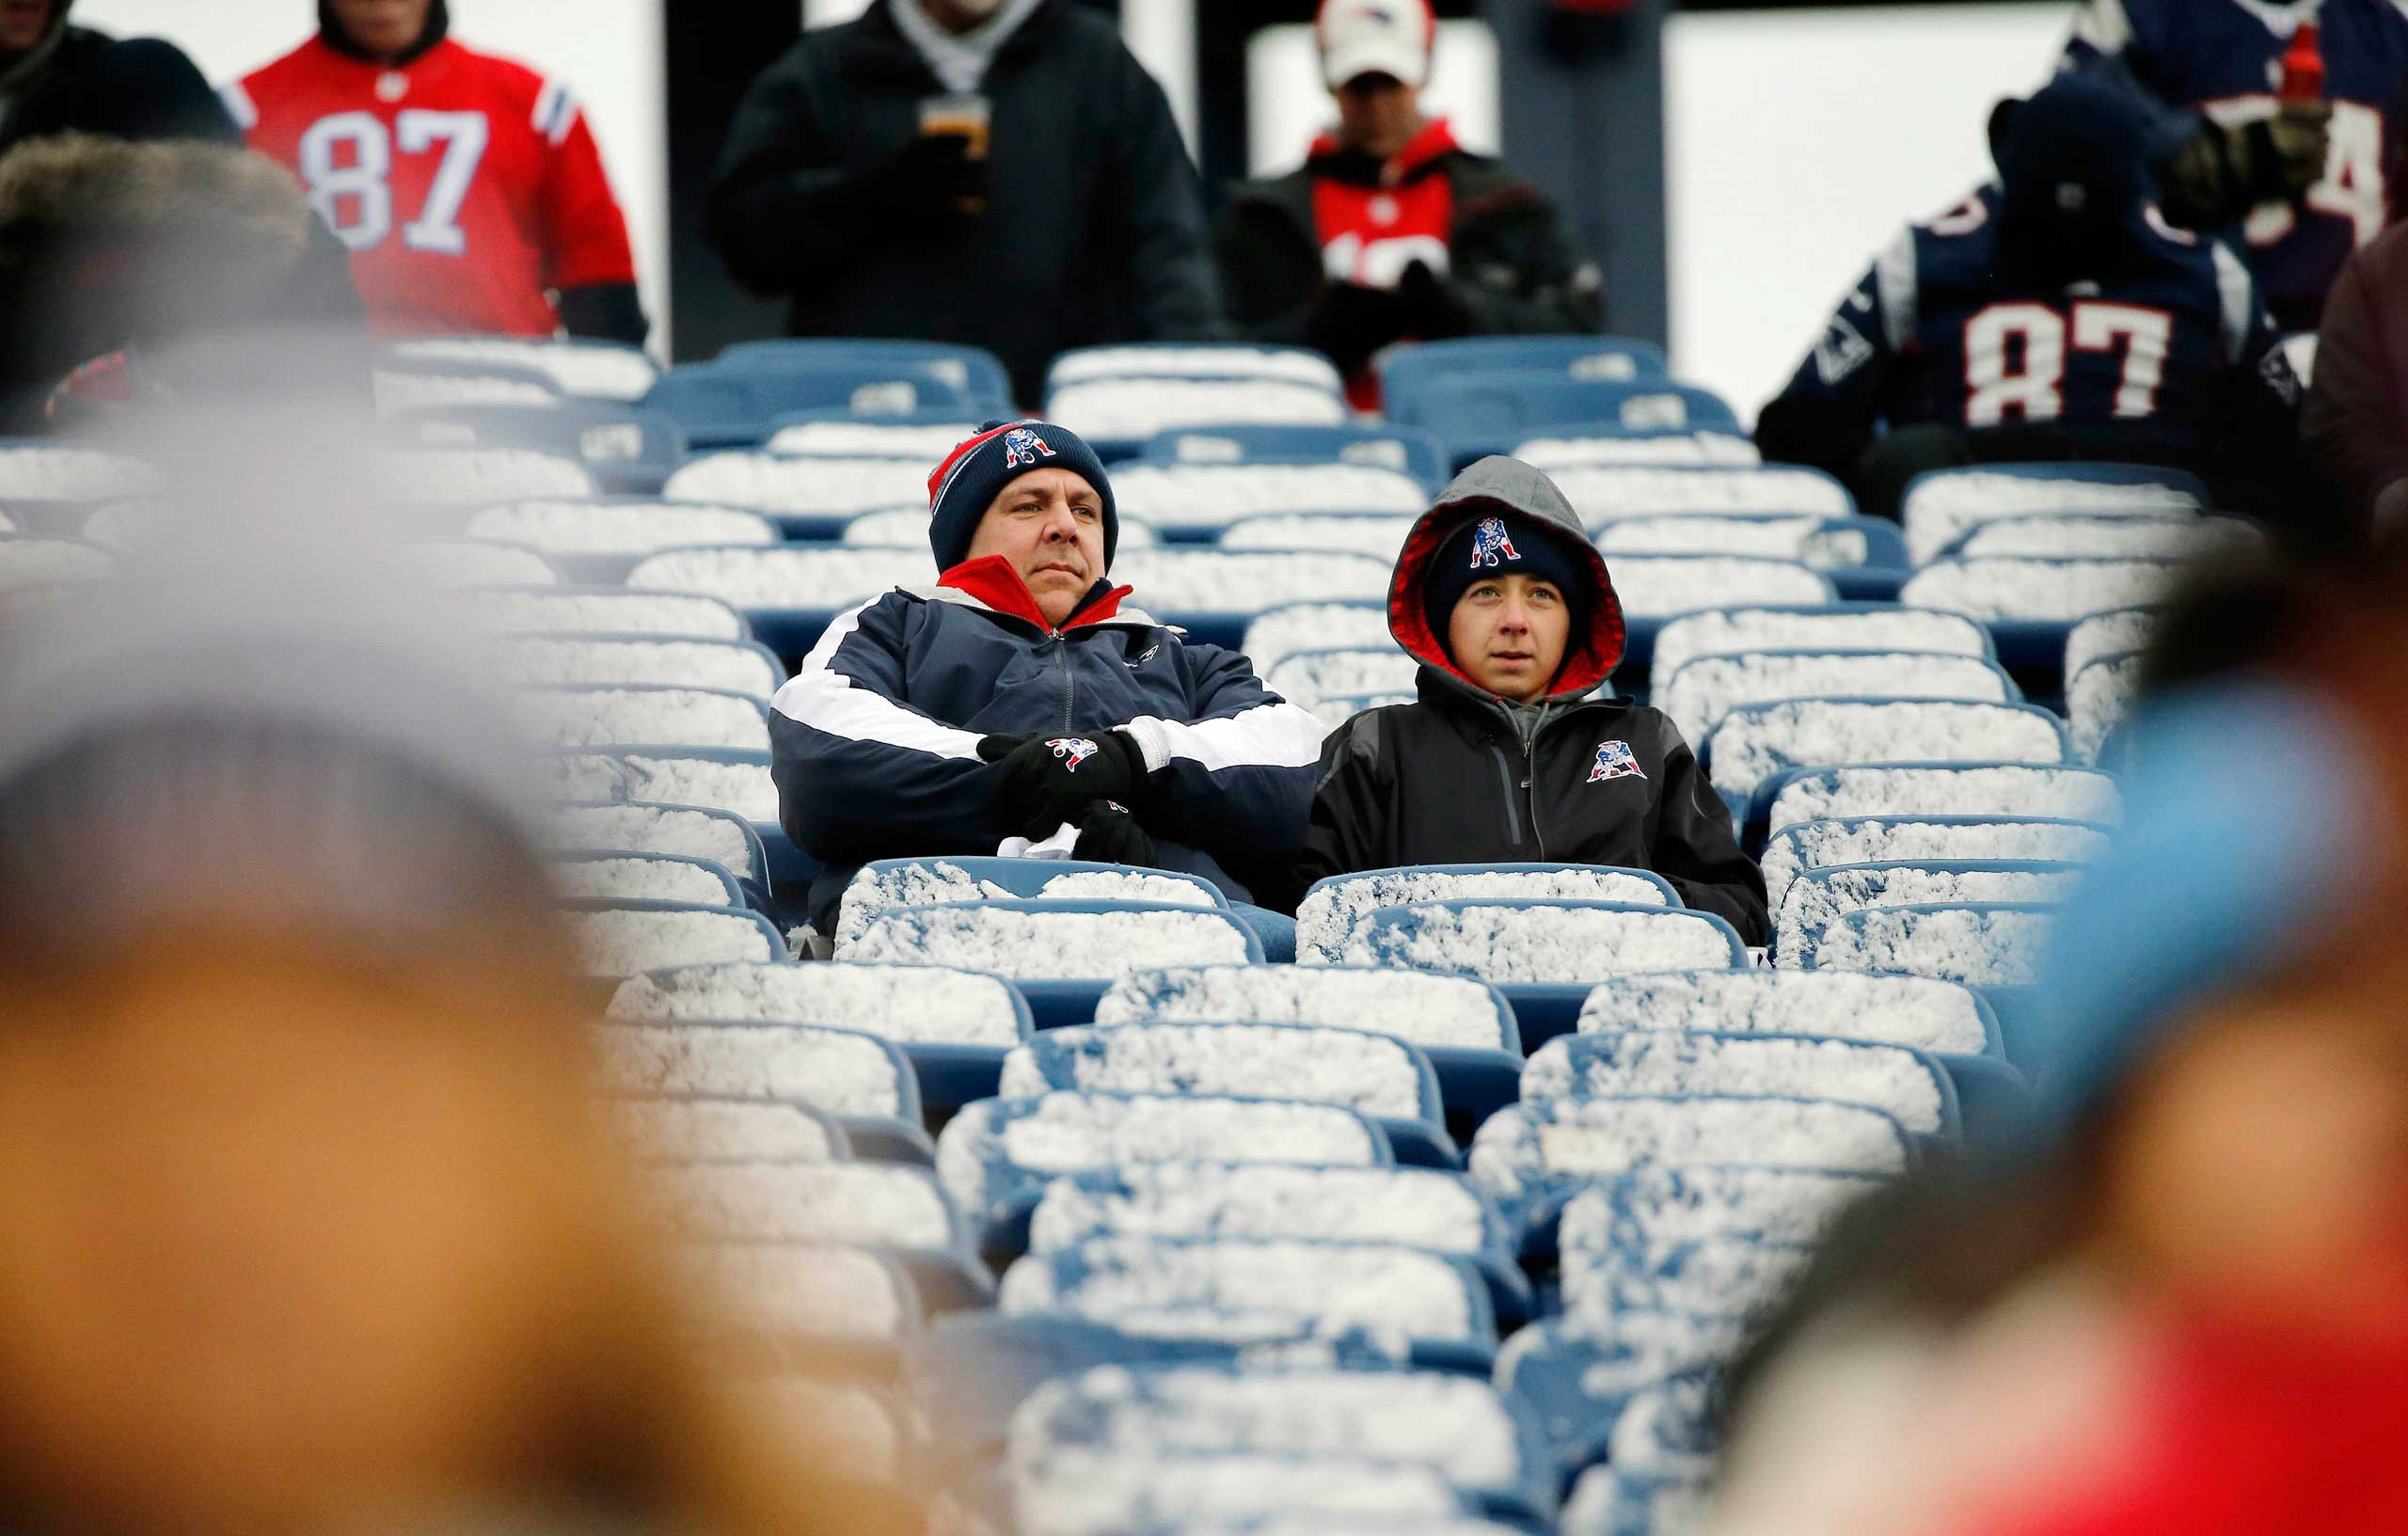 New England Patriots fans sit in seats coated by a light morning snow before an NFL football game between the Patriots and the Denver Broncos on Nov. 2, 2014, at Gillette Stadium in Foxborough, Mass.